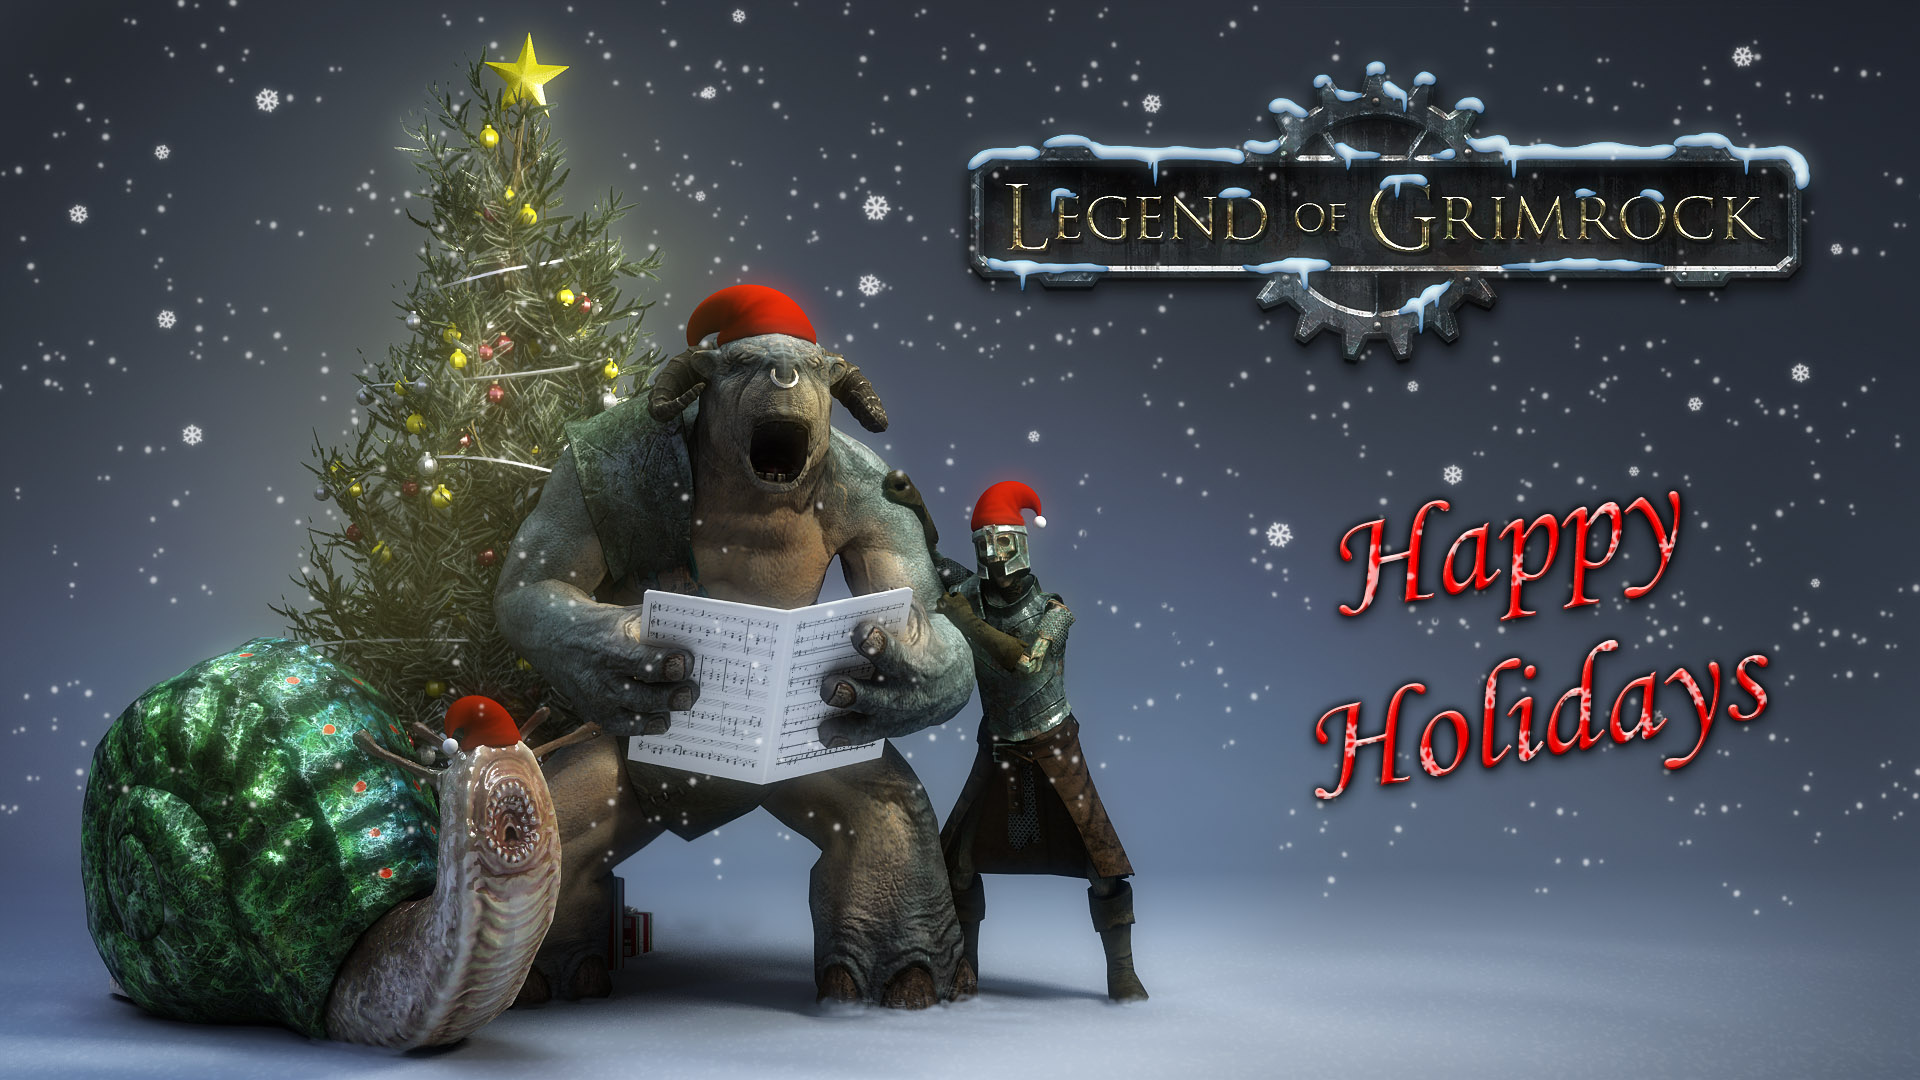 Merry Christmas and a Happy New Year! » Legend of Grimrock